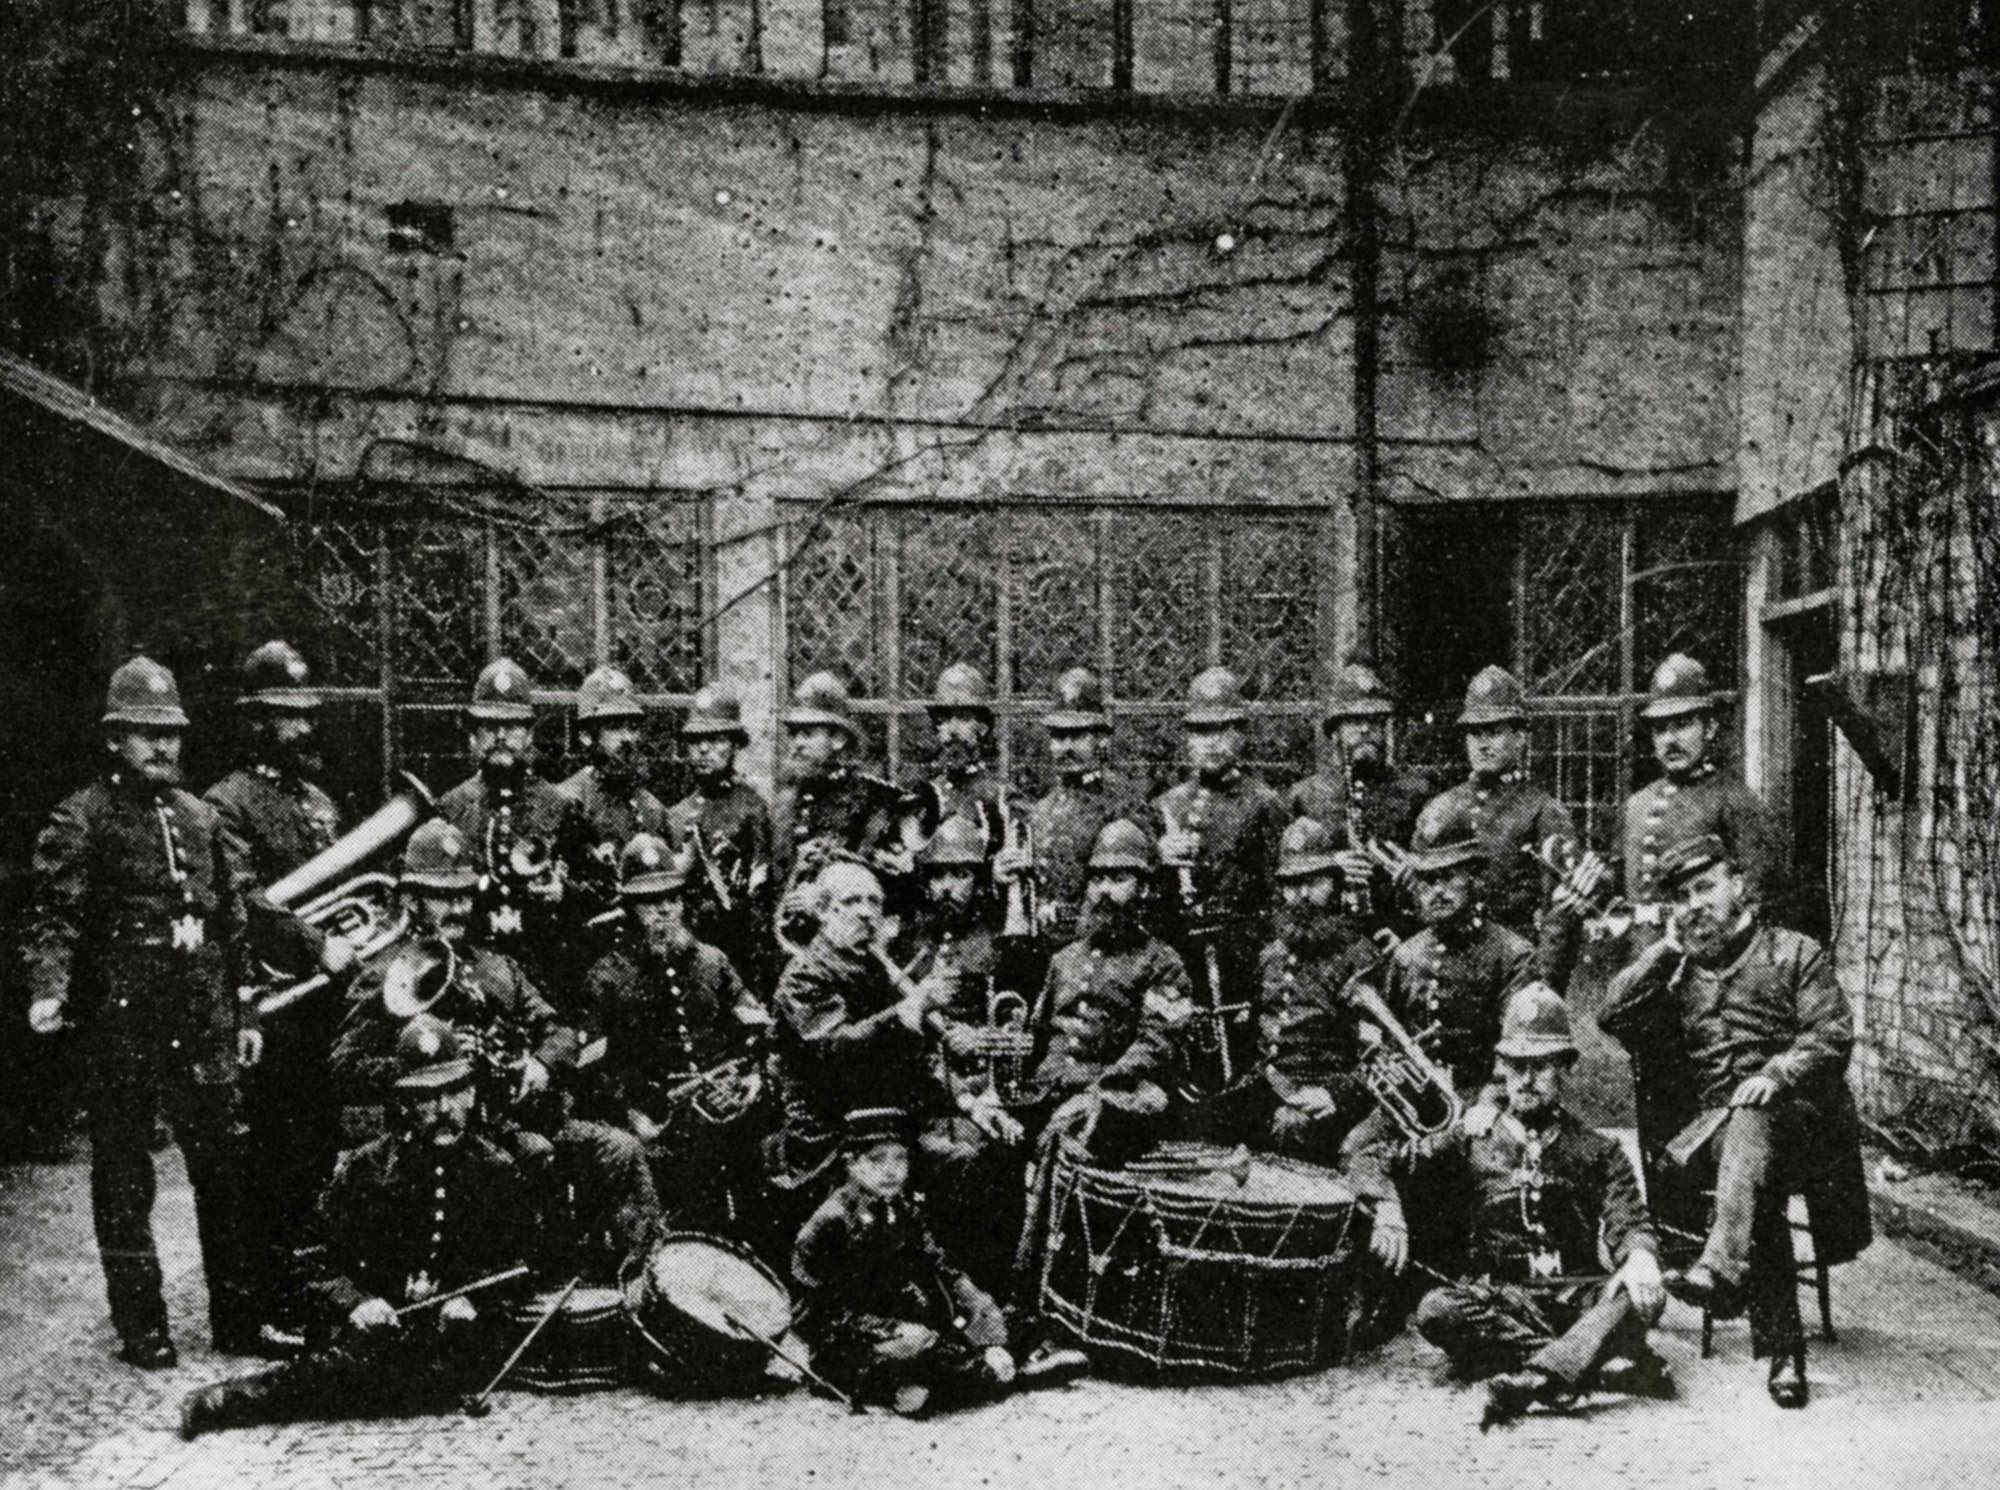 Leicester Borough Police Band, c.1865 in the courtyard of what is now The Guildhall -